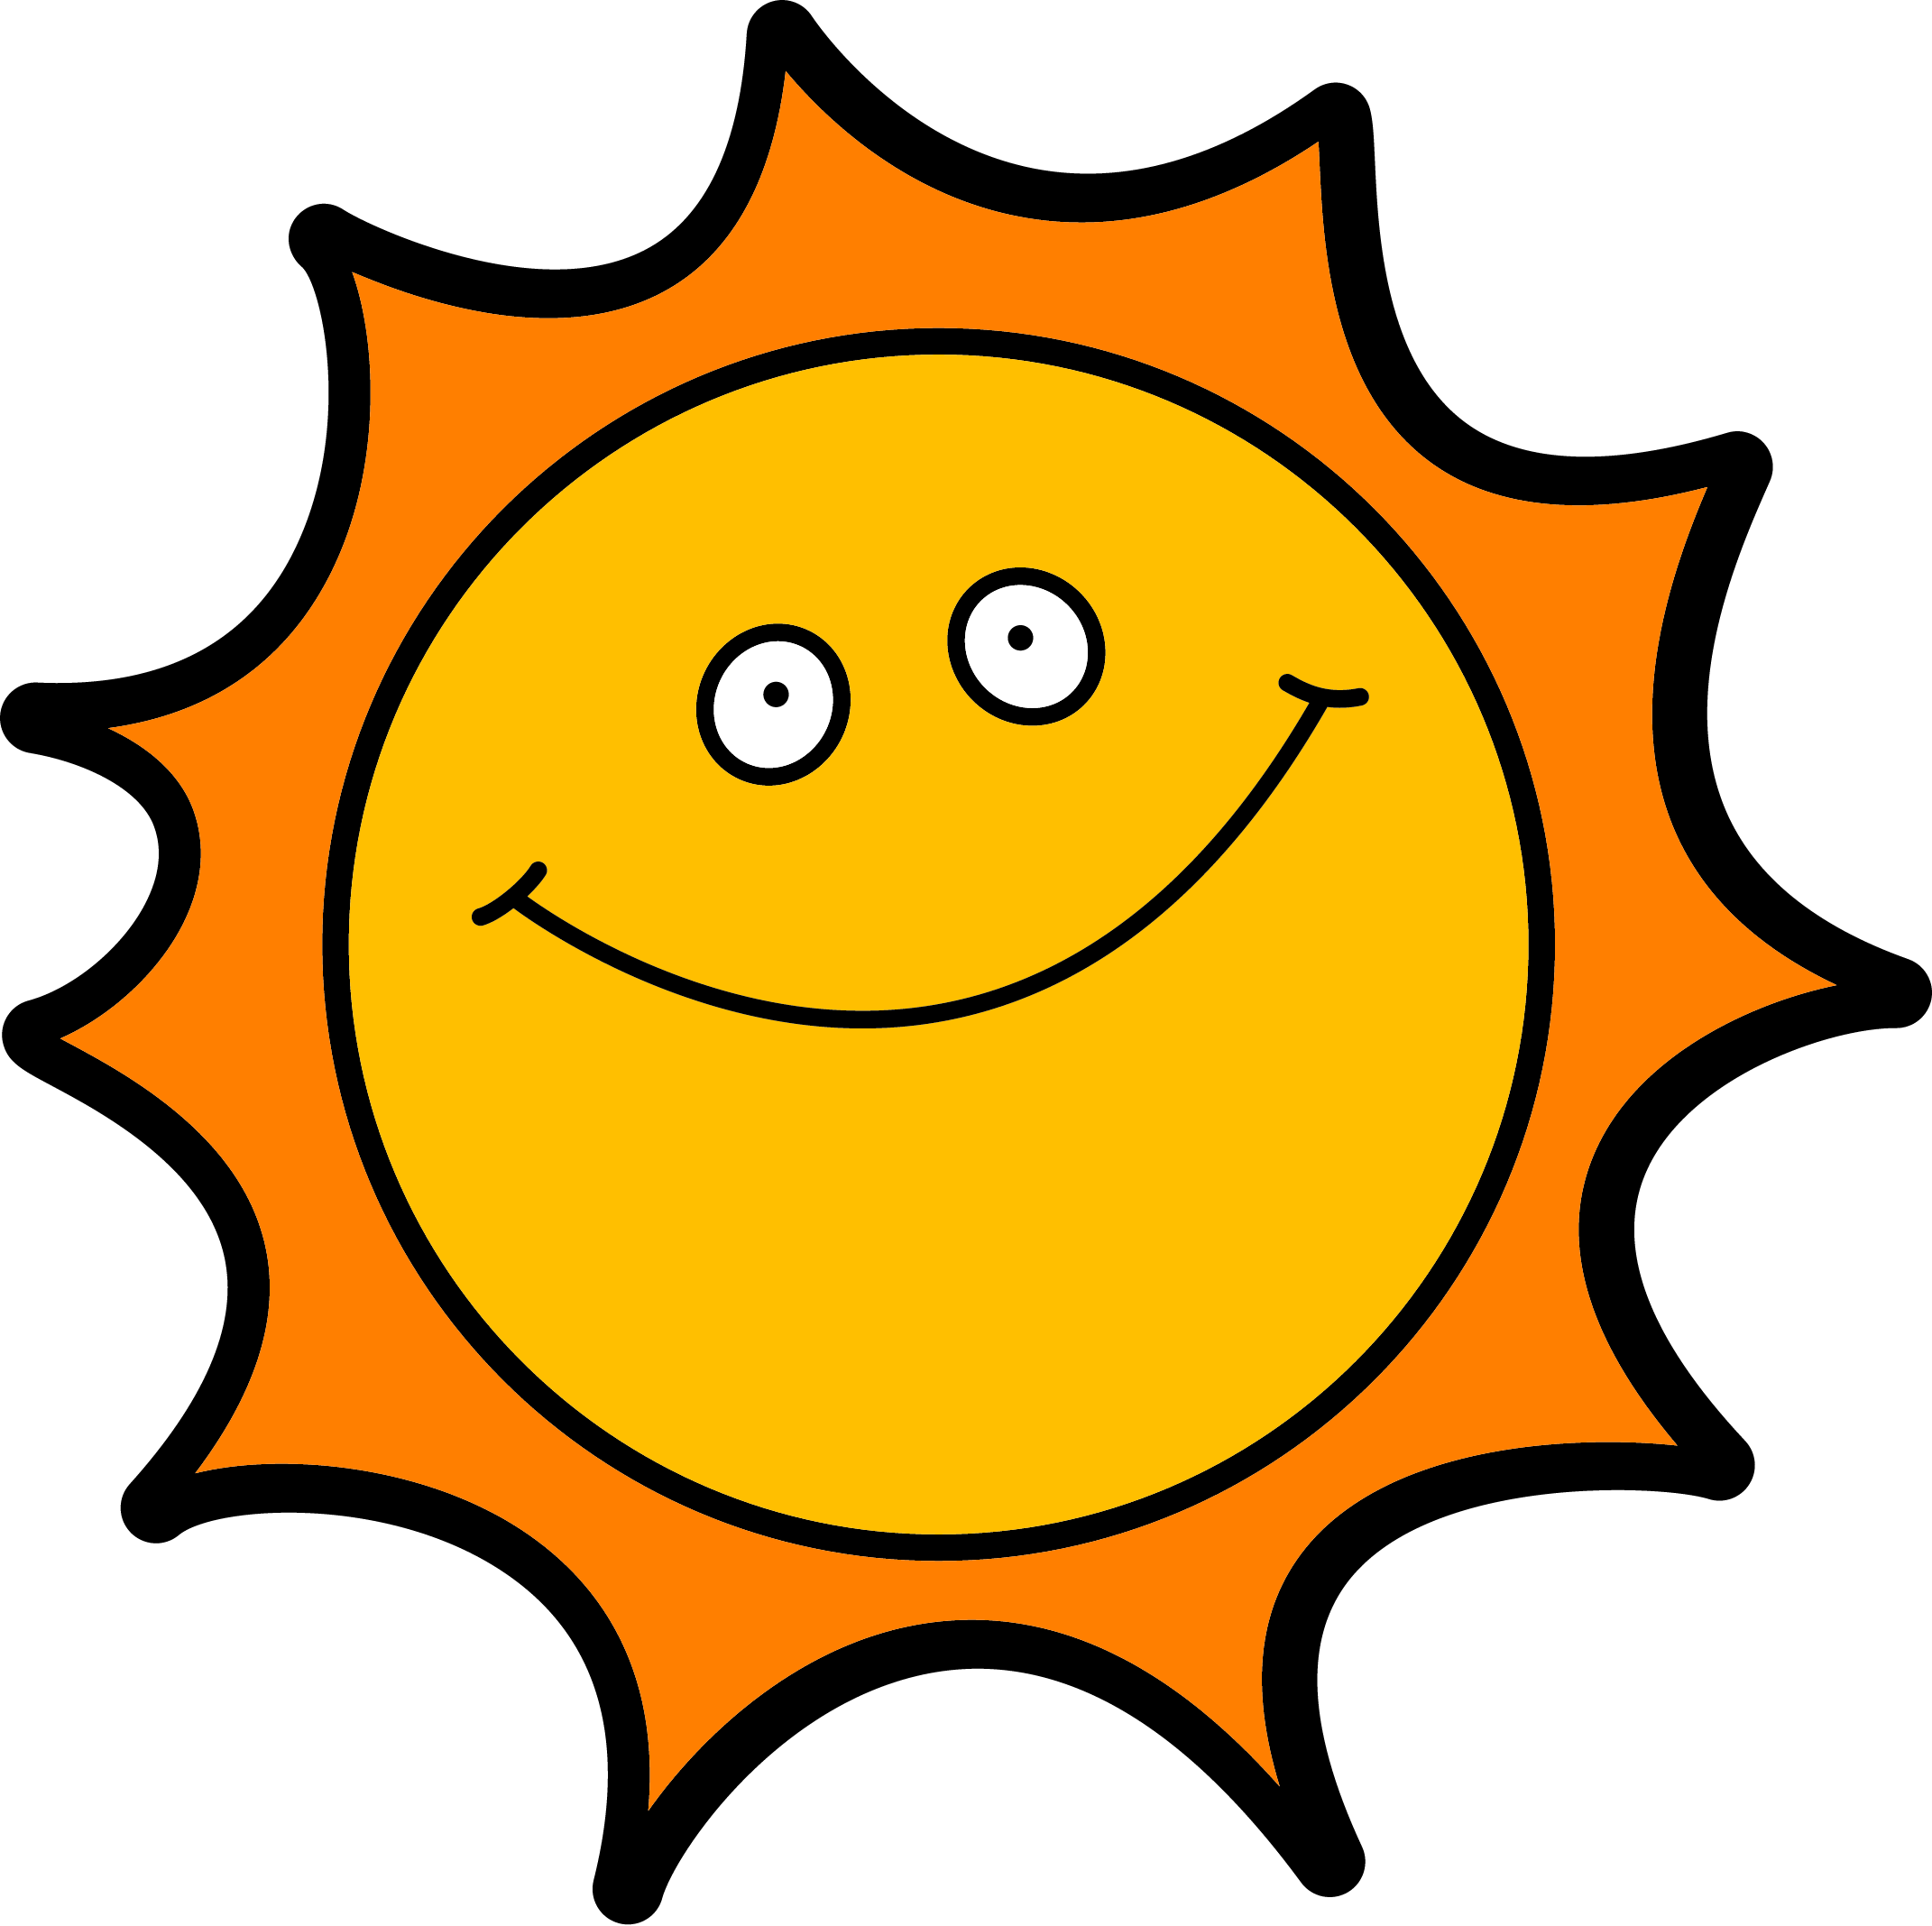 Hot sun images best. Windy clipart park